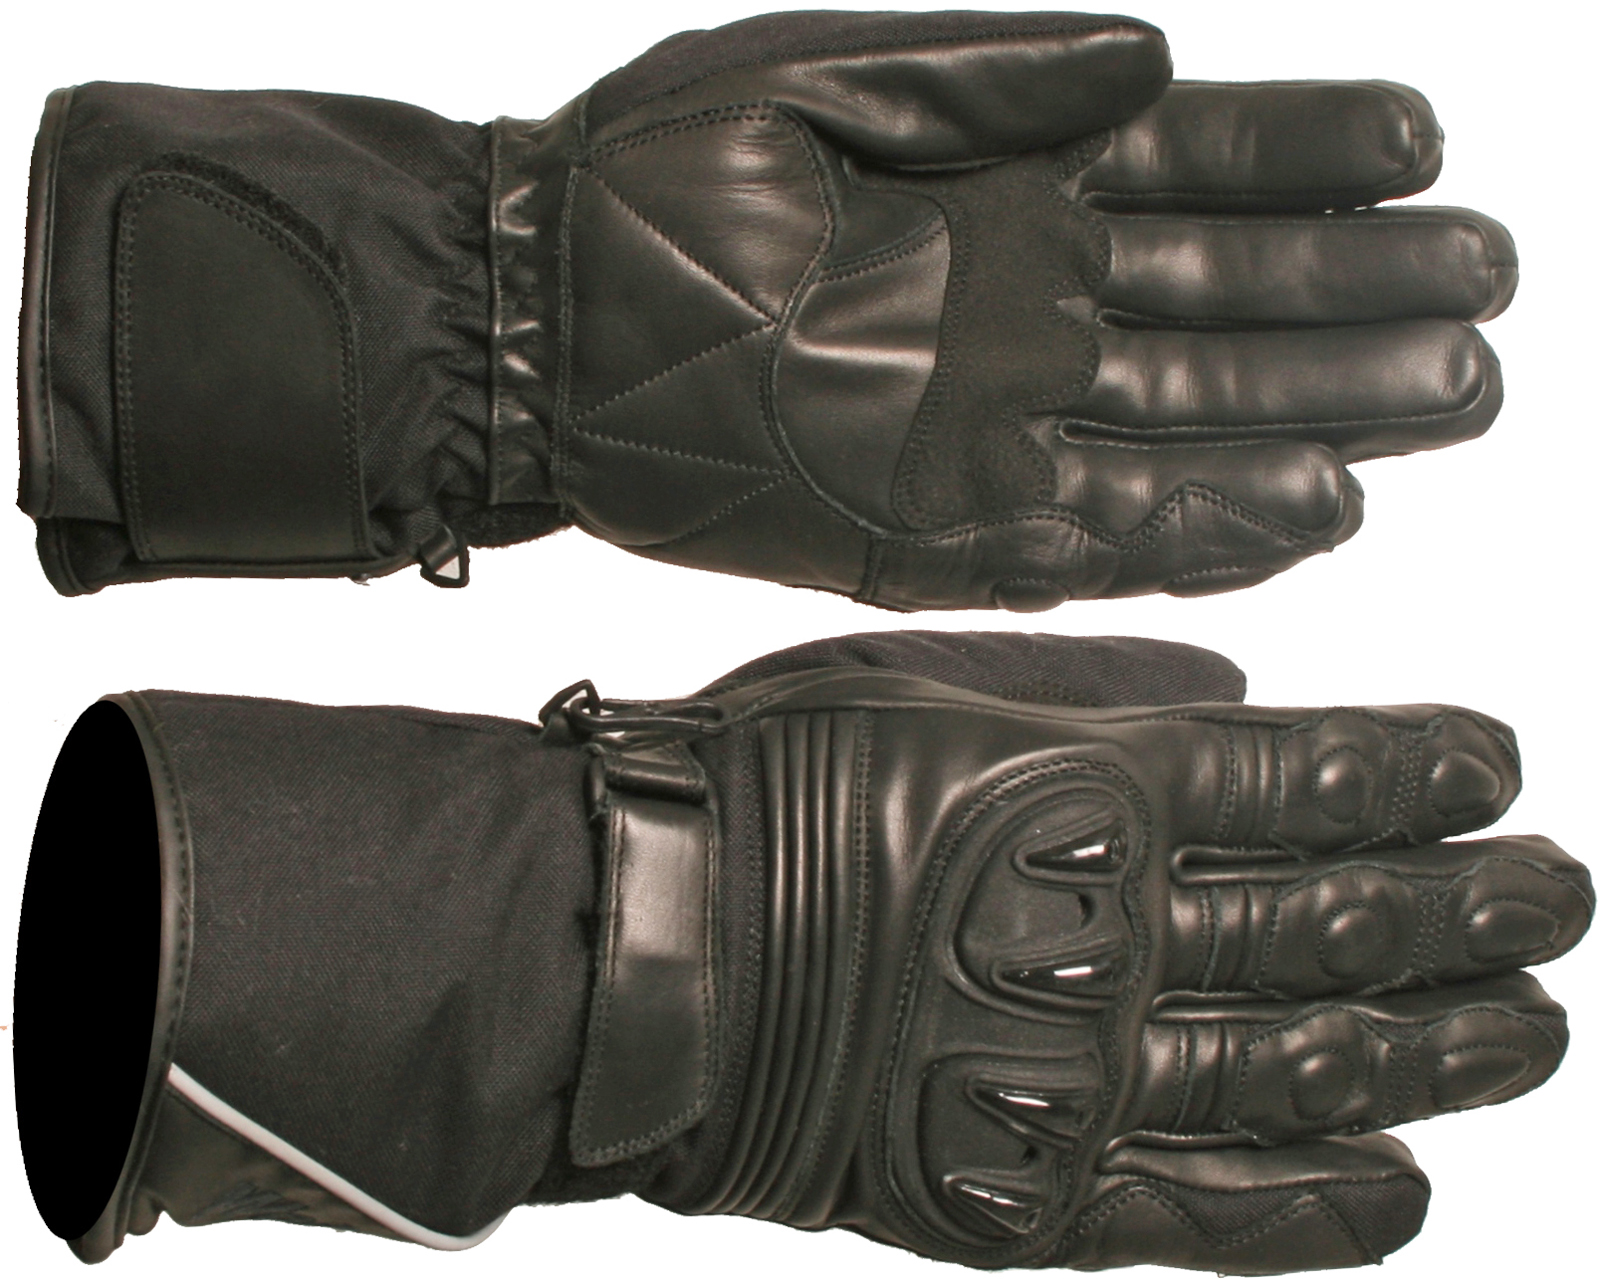 Weise Lima motorcycling gloves - Adventure 52